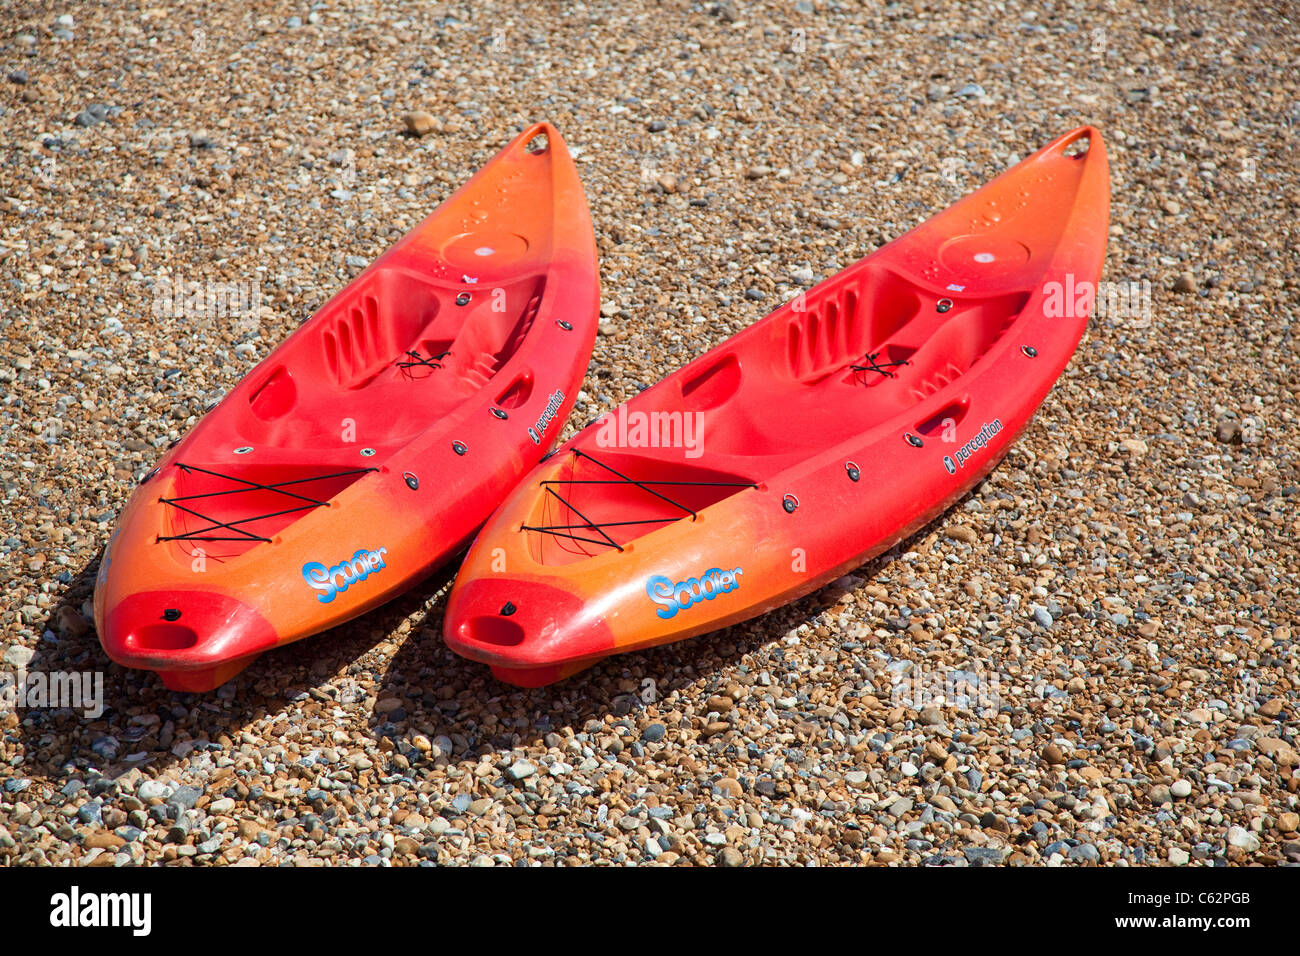 Perception Kayaks Stock Photos & Perception Kayaks Stock Images - Alamy